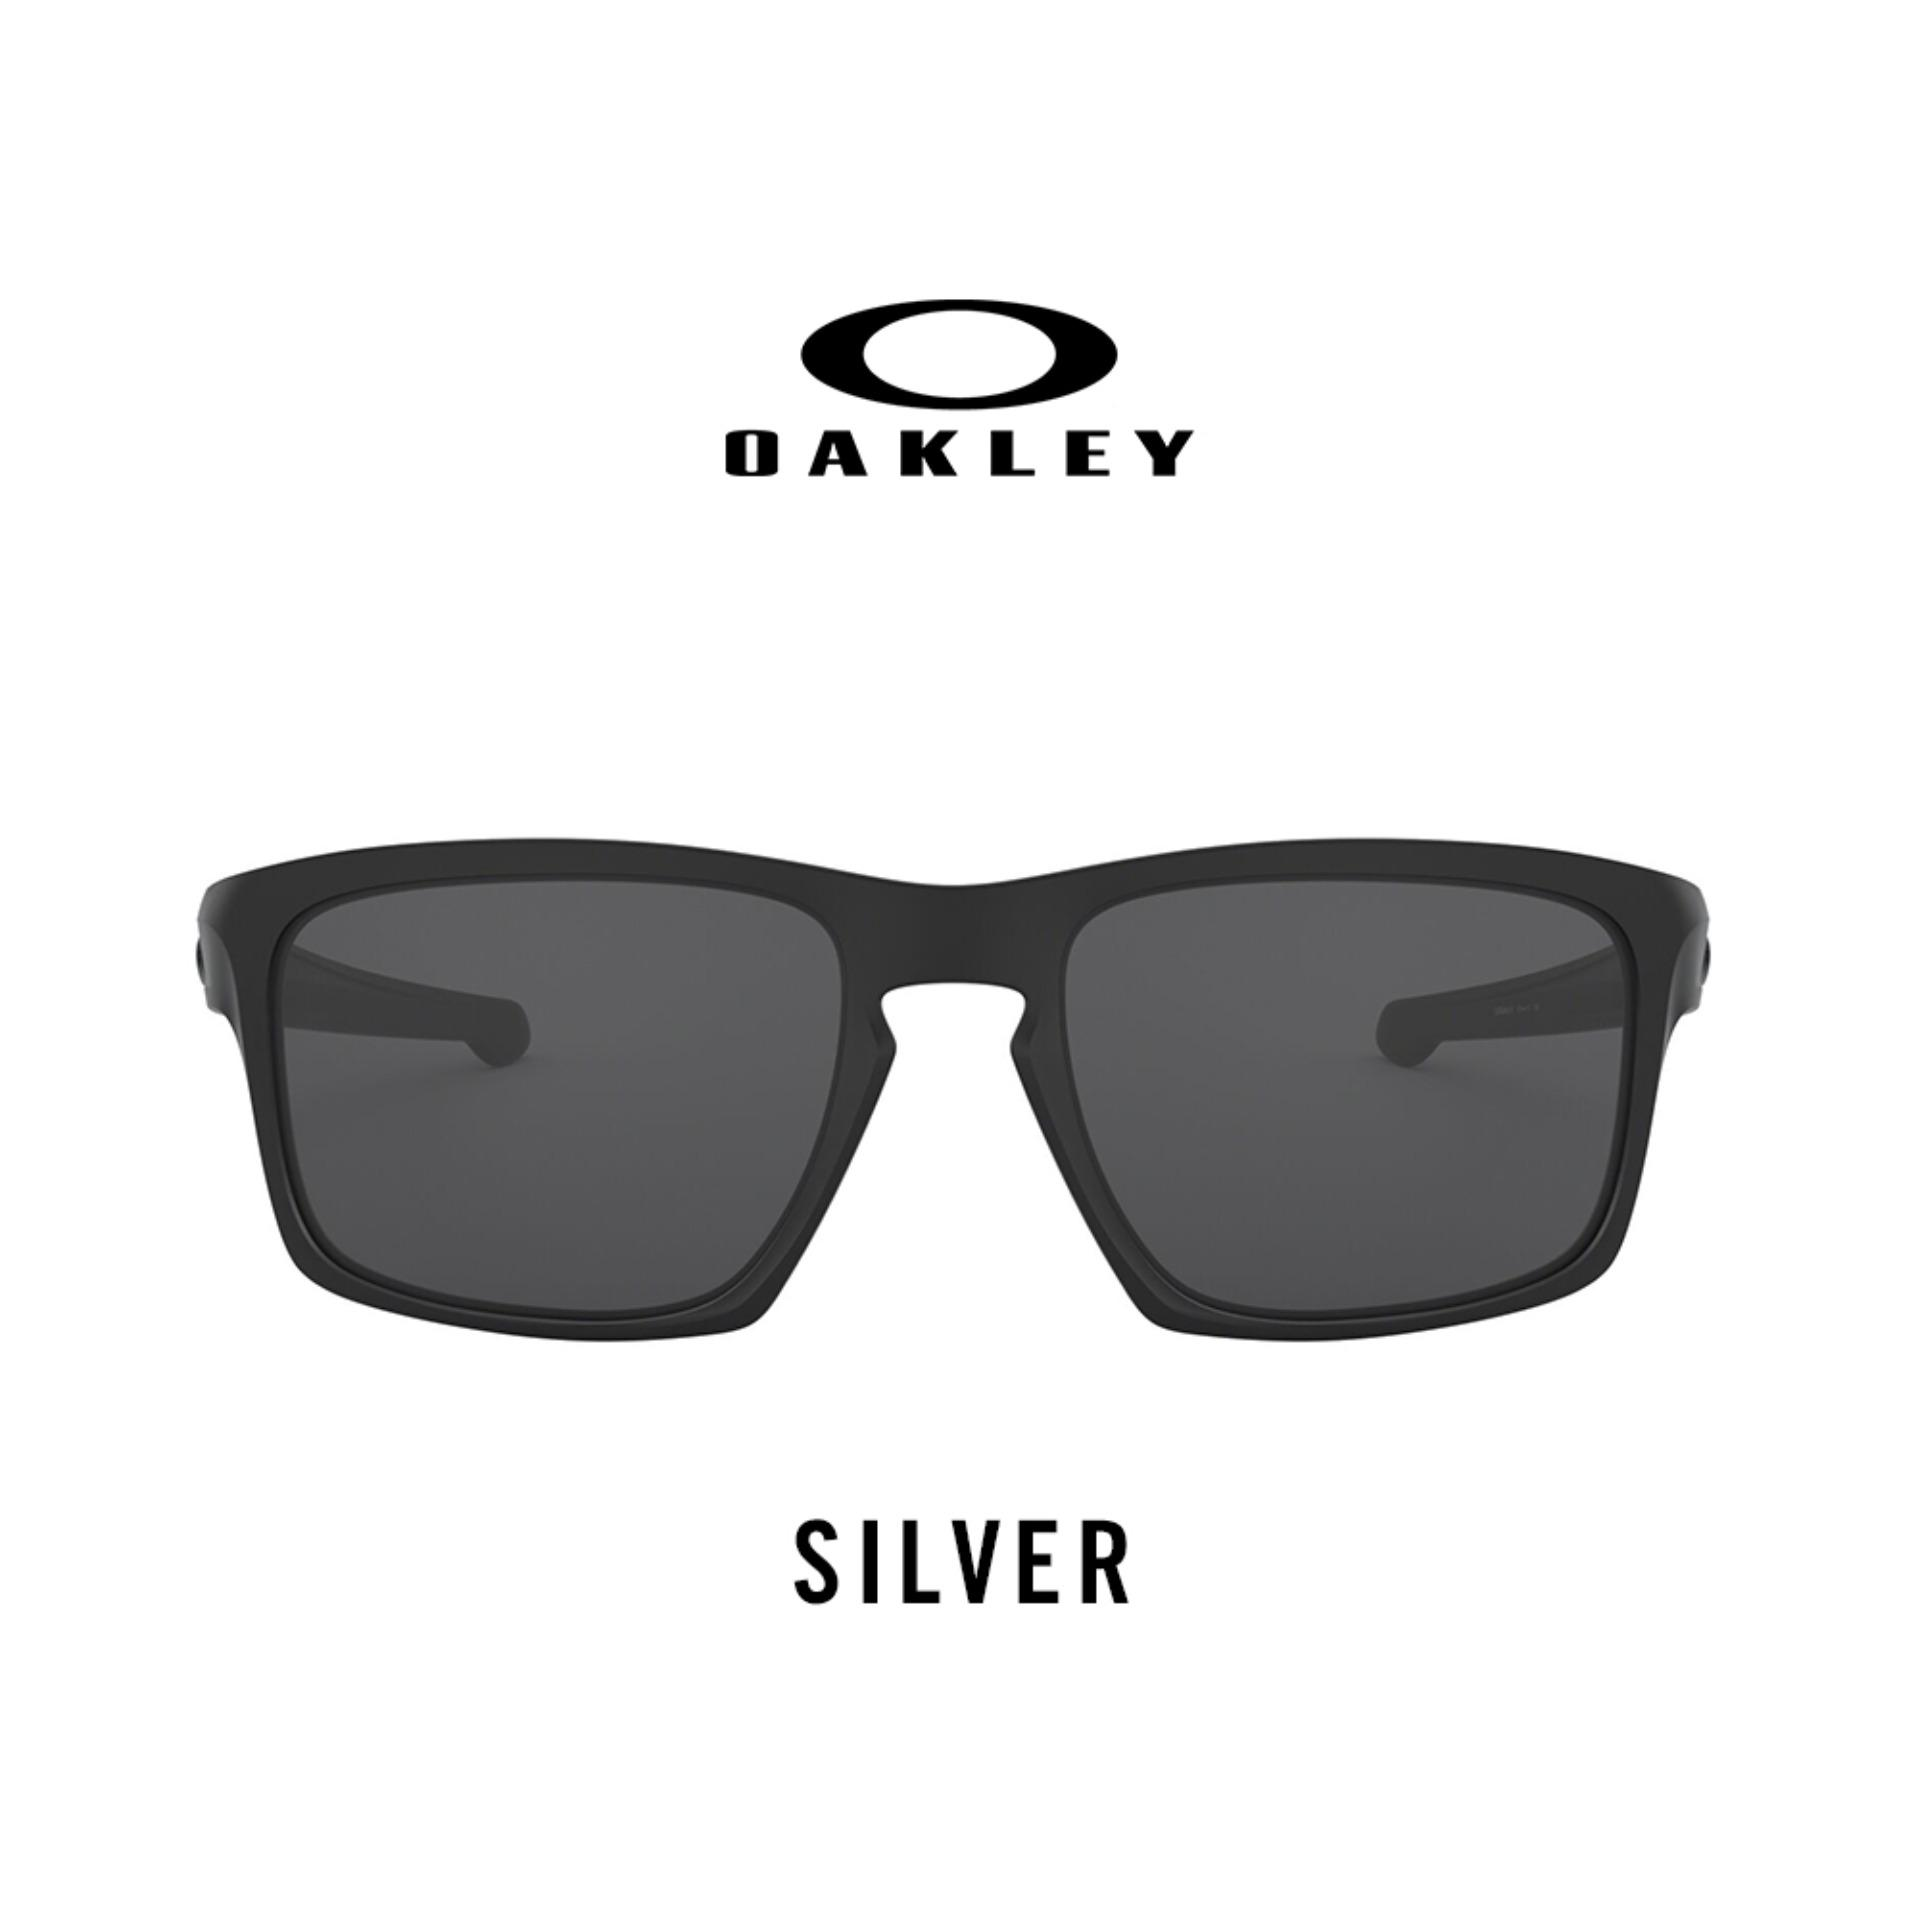 461c67556efa4 Oakley Philippines - Oakley Sunglasses For Men for sale - prices ...